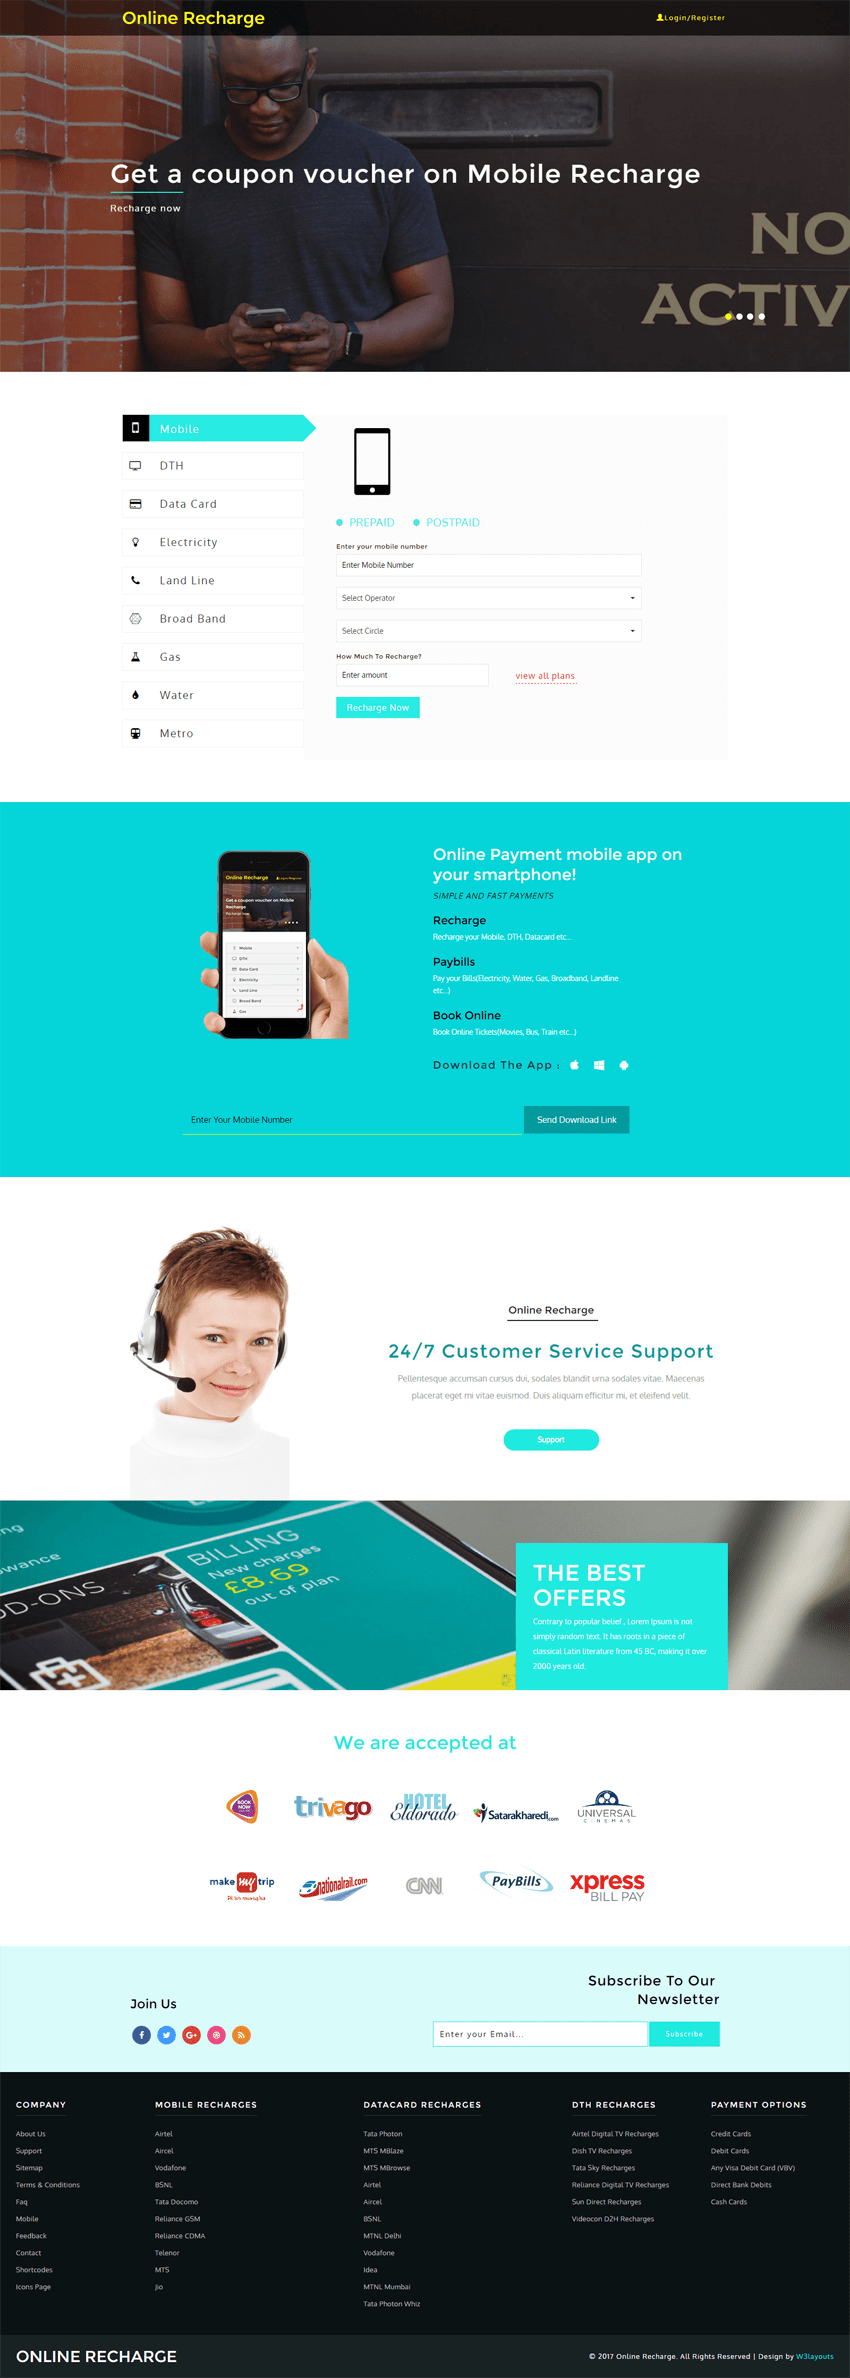 Online Recharge is a Bootstrap respomsive website template for online bill payment sites. This free HTML web template works well for all bill payment sites.